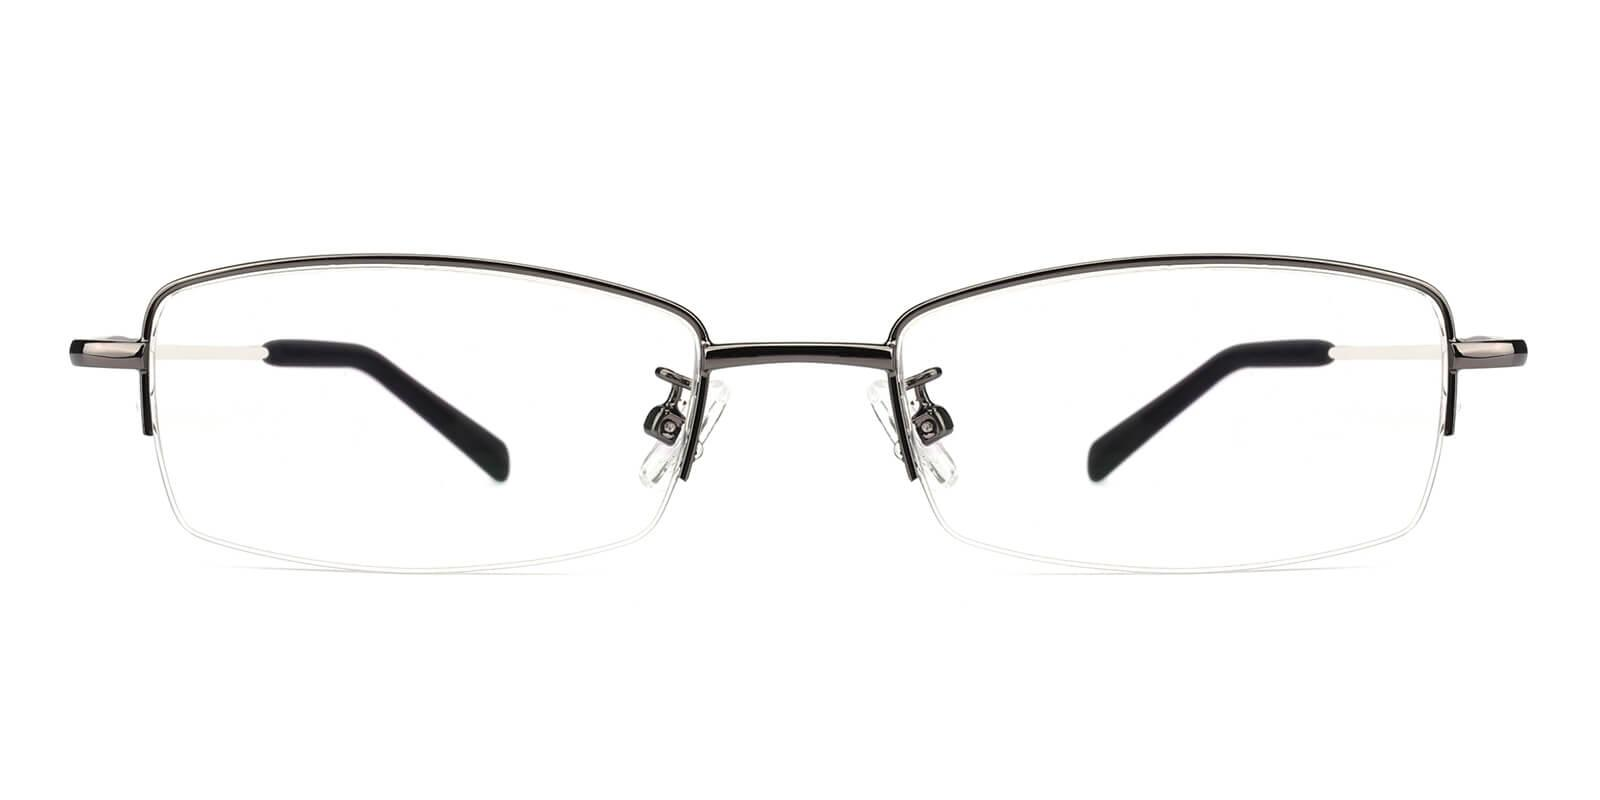 Healdton-Gun-Rectangle-Metal-Eyeglasses-additional2